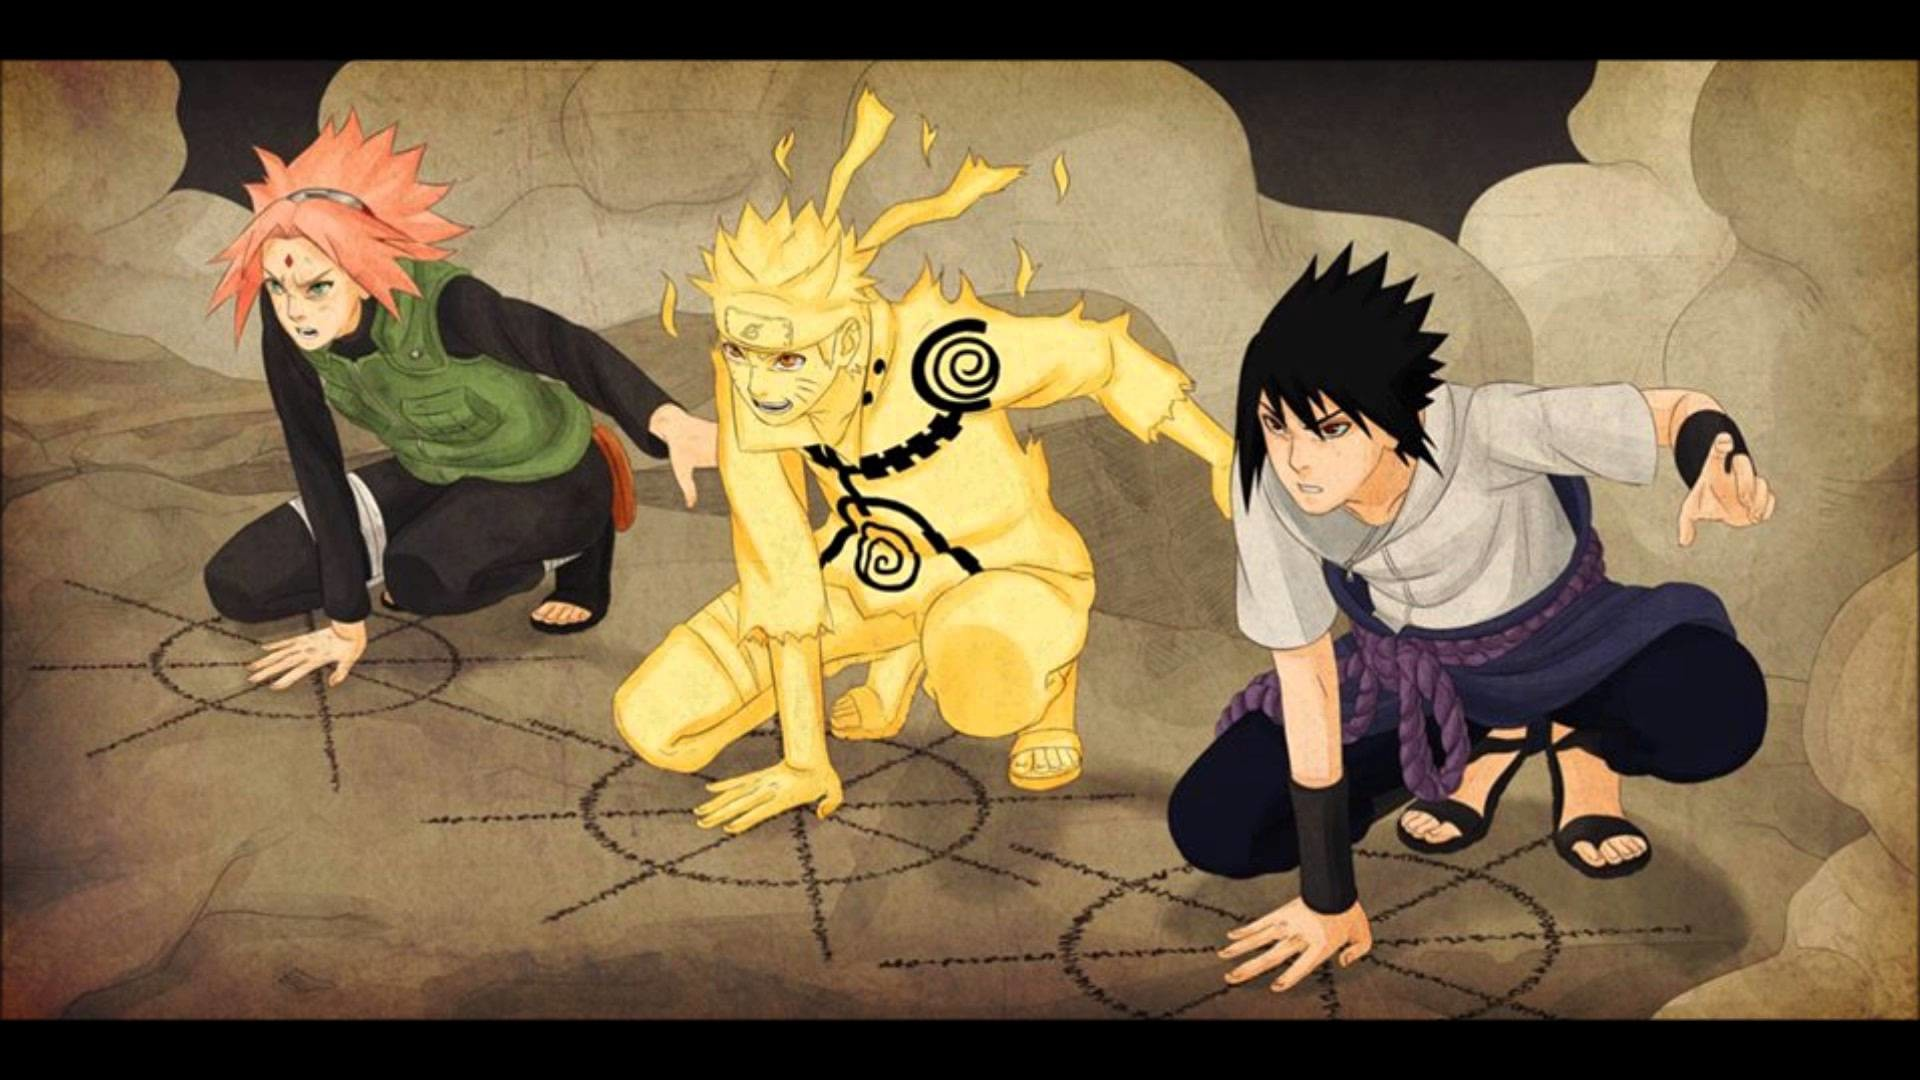 Naruto team 7 wallpapers 62 images - Anime wallpaper hd iphone 7 ...